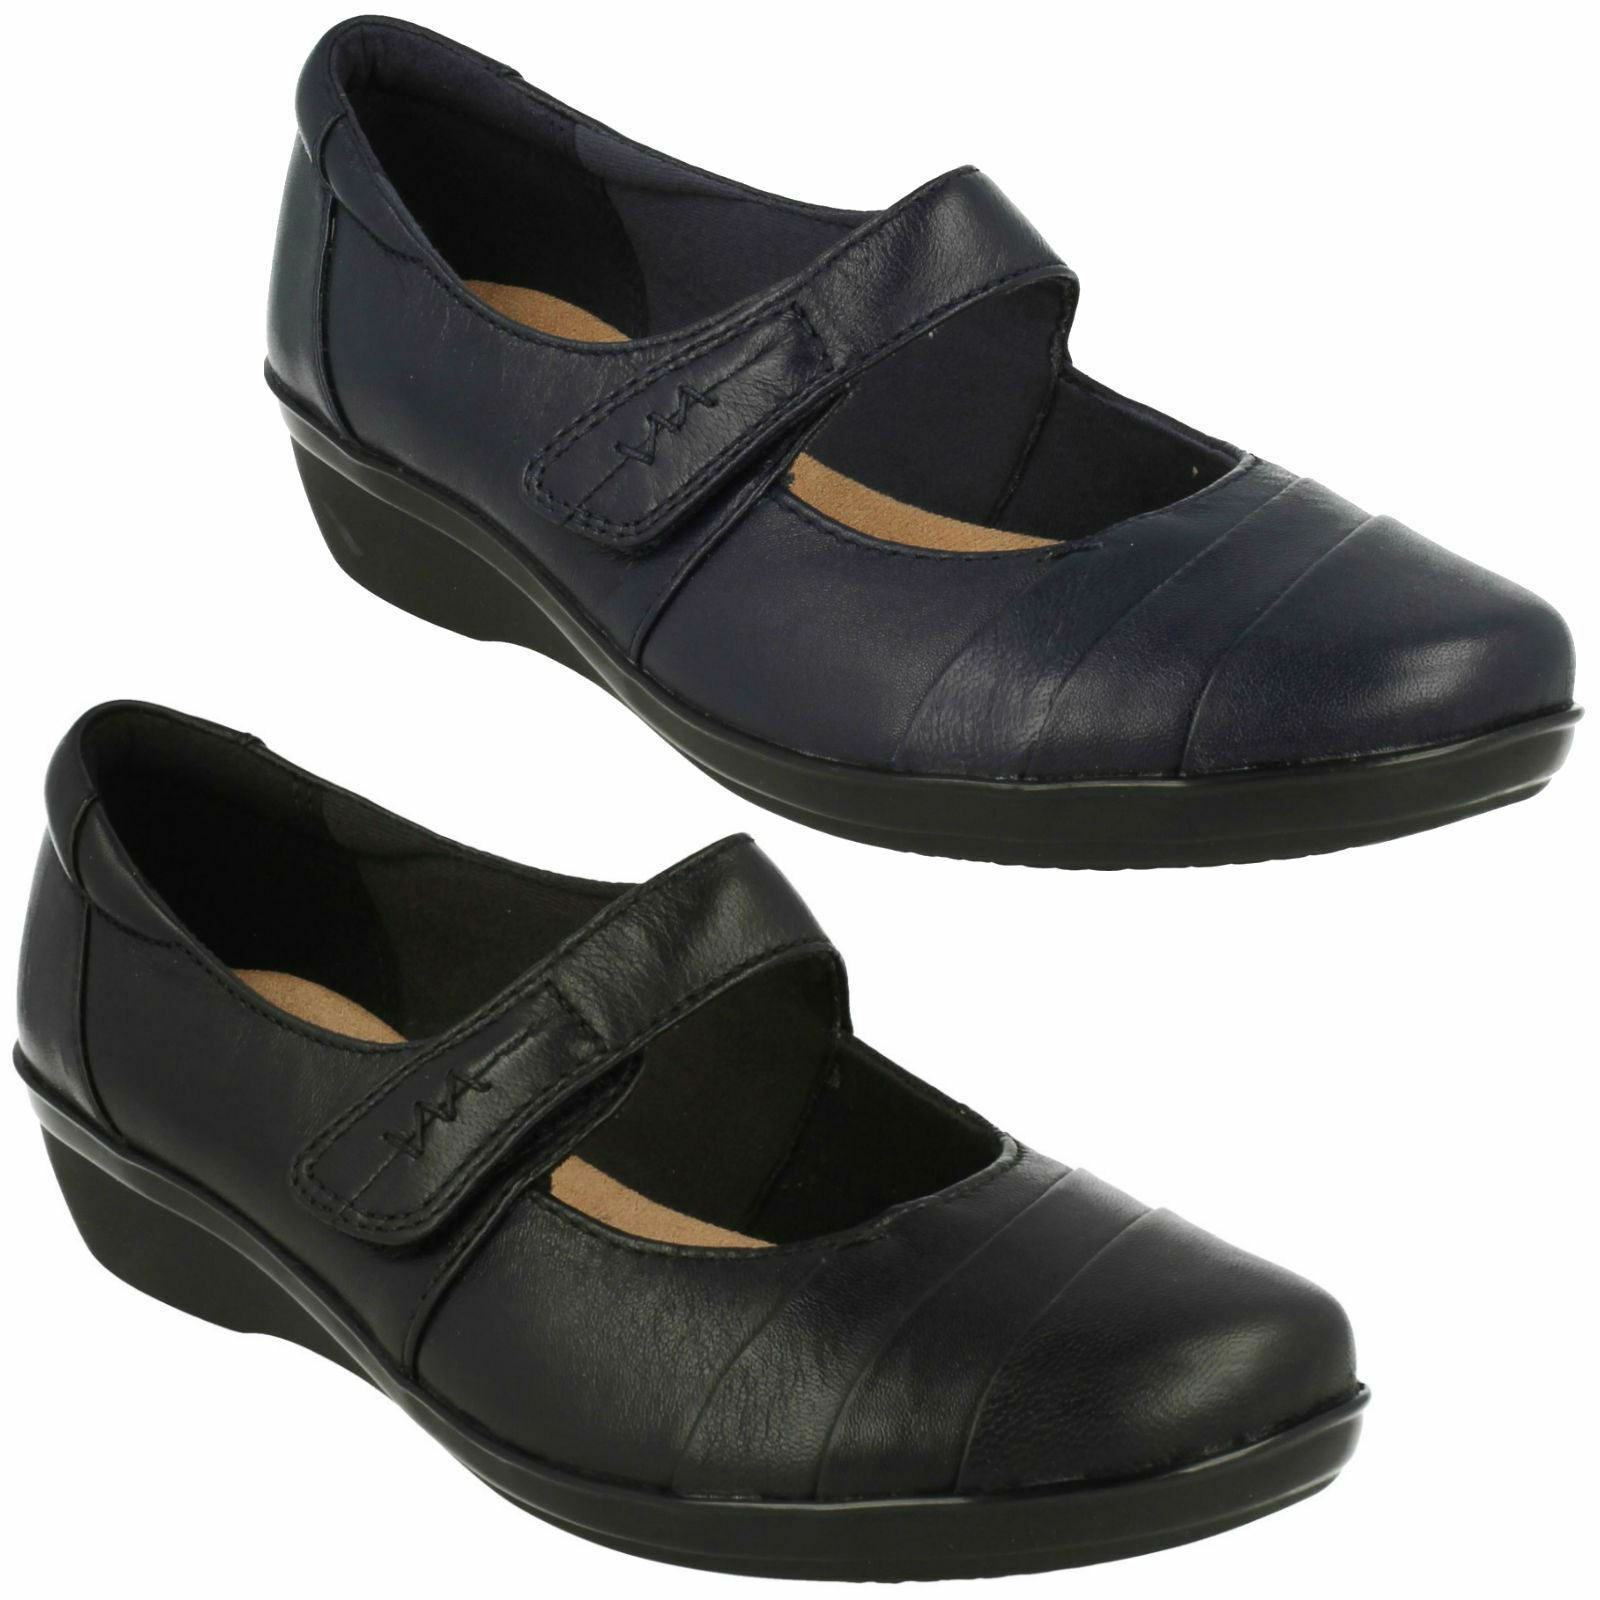 EVERLAY EVERLAY EVERLAY KENNON LADIES CLARKS RIPTAPE STRAP MARY JANE CASUAL WEDGE HEEL Schuhe 413ad2